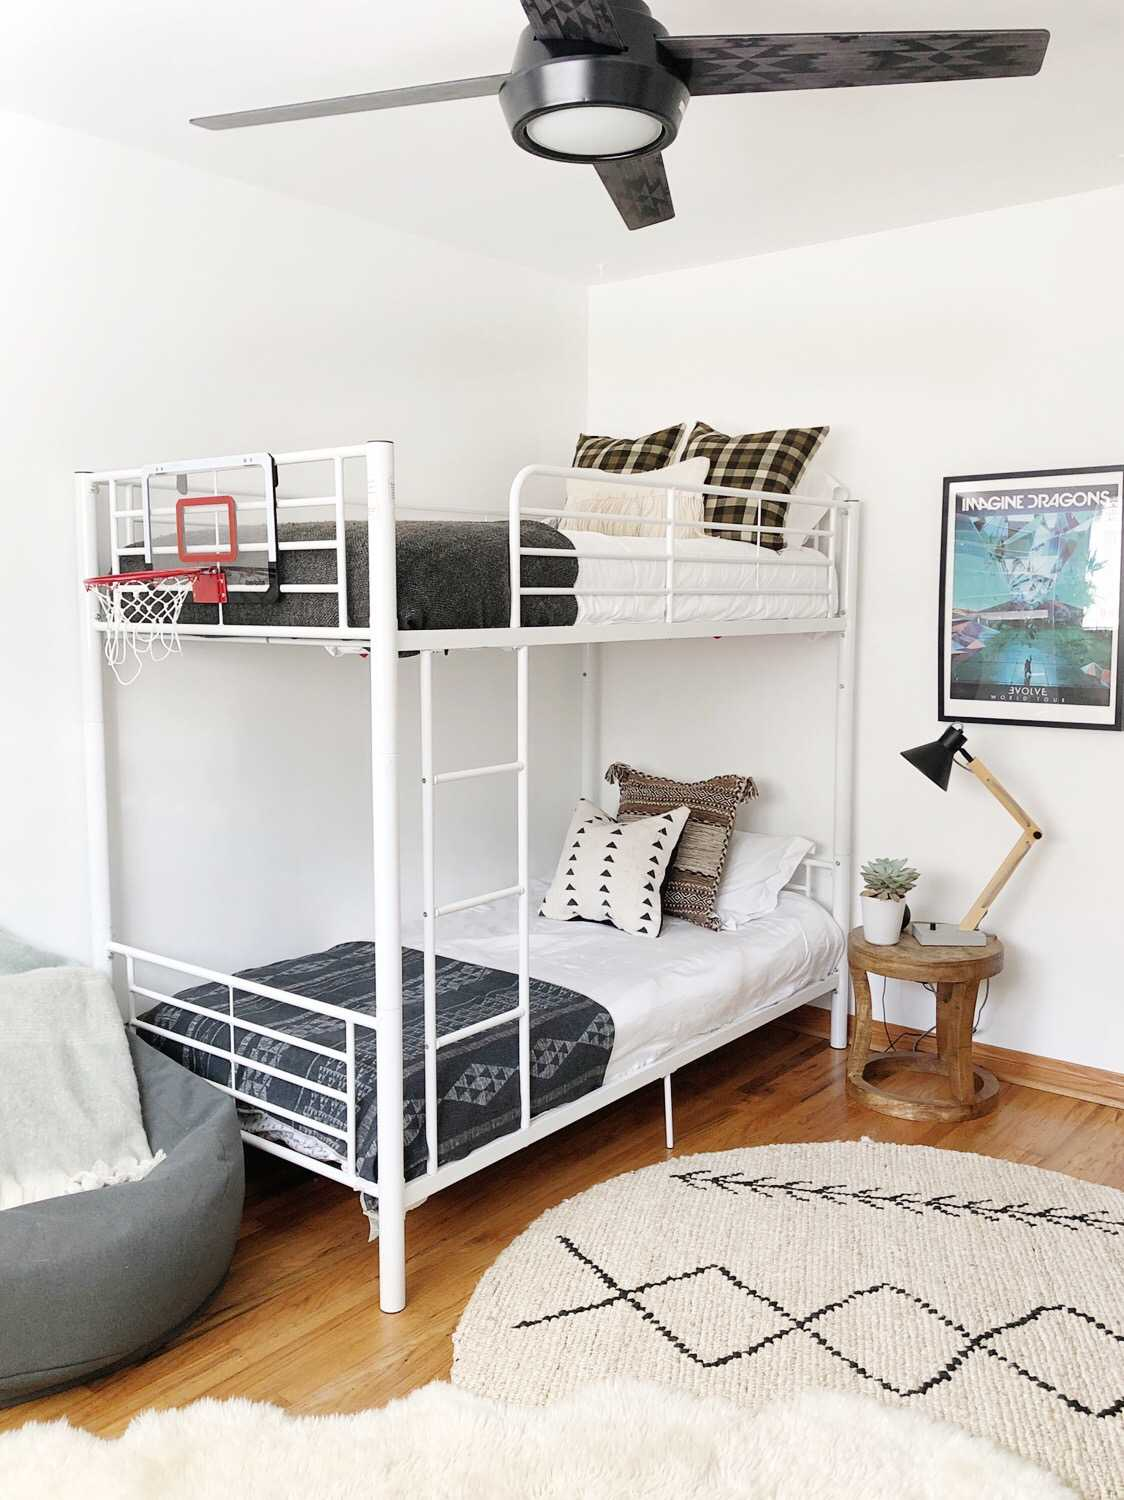 big kid room design ideas with bunk beds